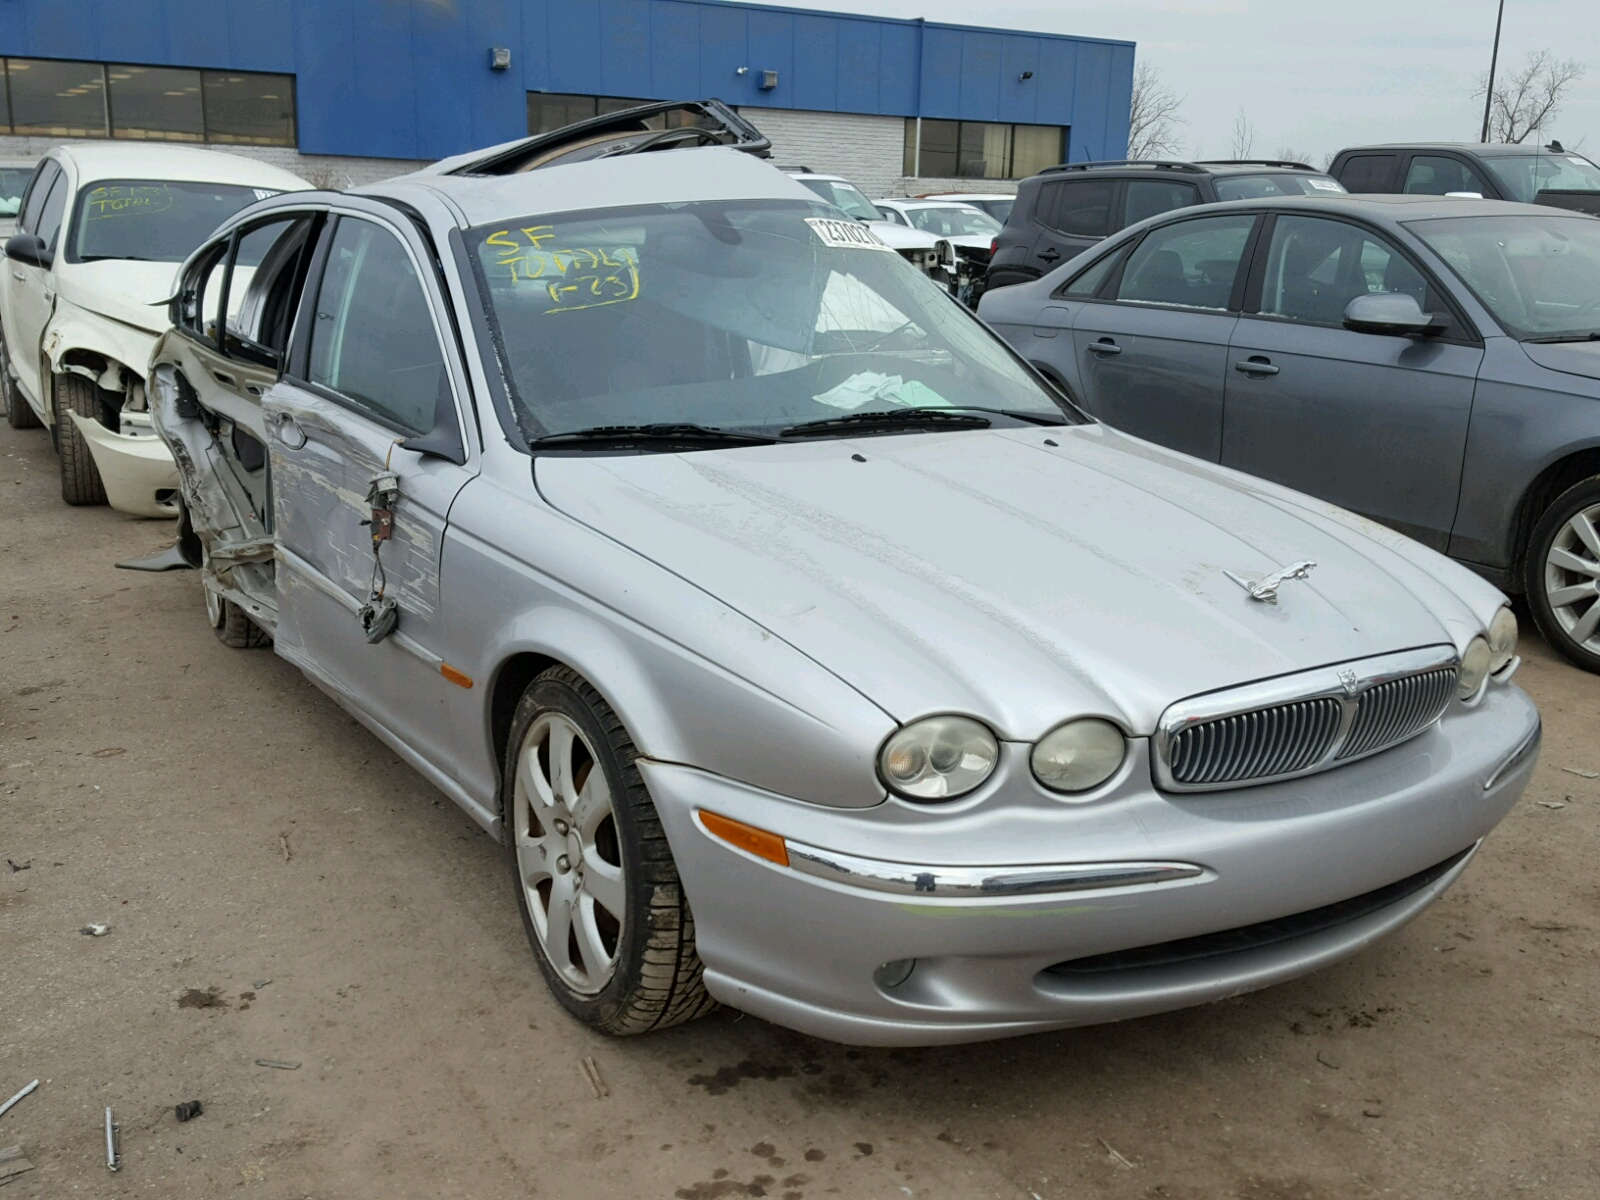 mi s jaguar sale l used by type owner for dearborn in car private